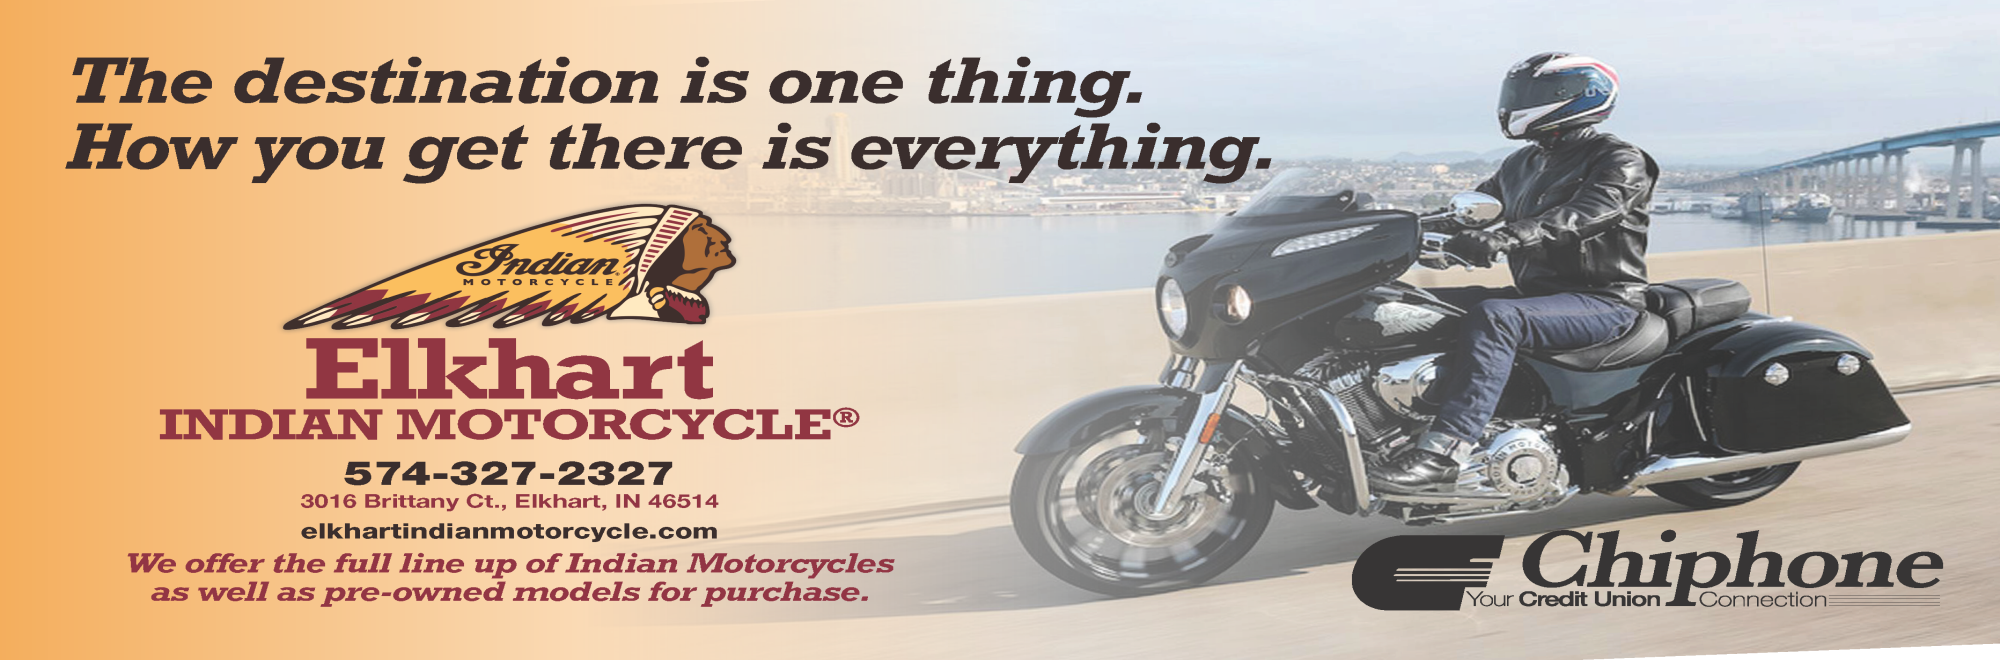 INDIAN MOTORCYCLE – FEATURED DEALER FOR JUNE